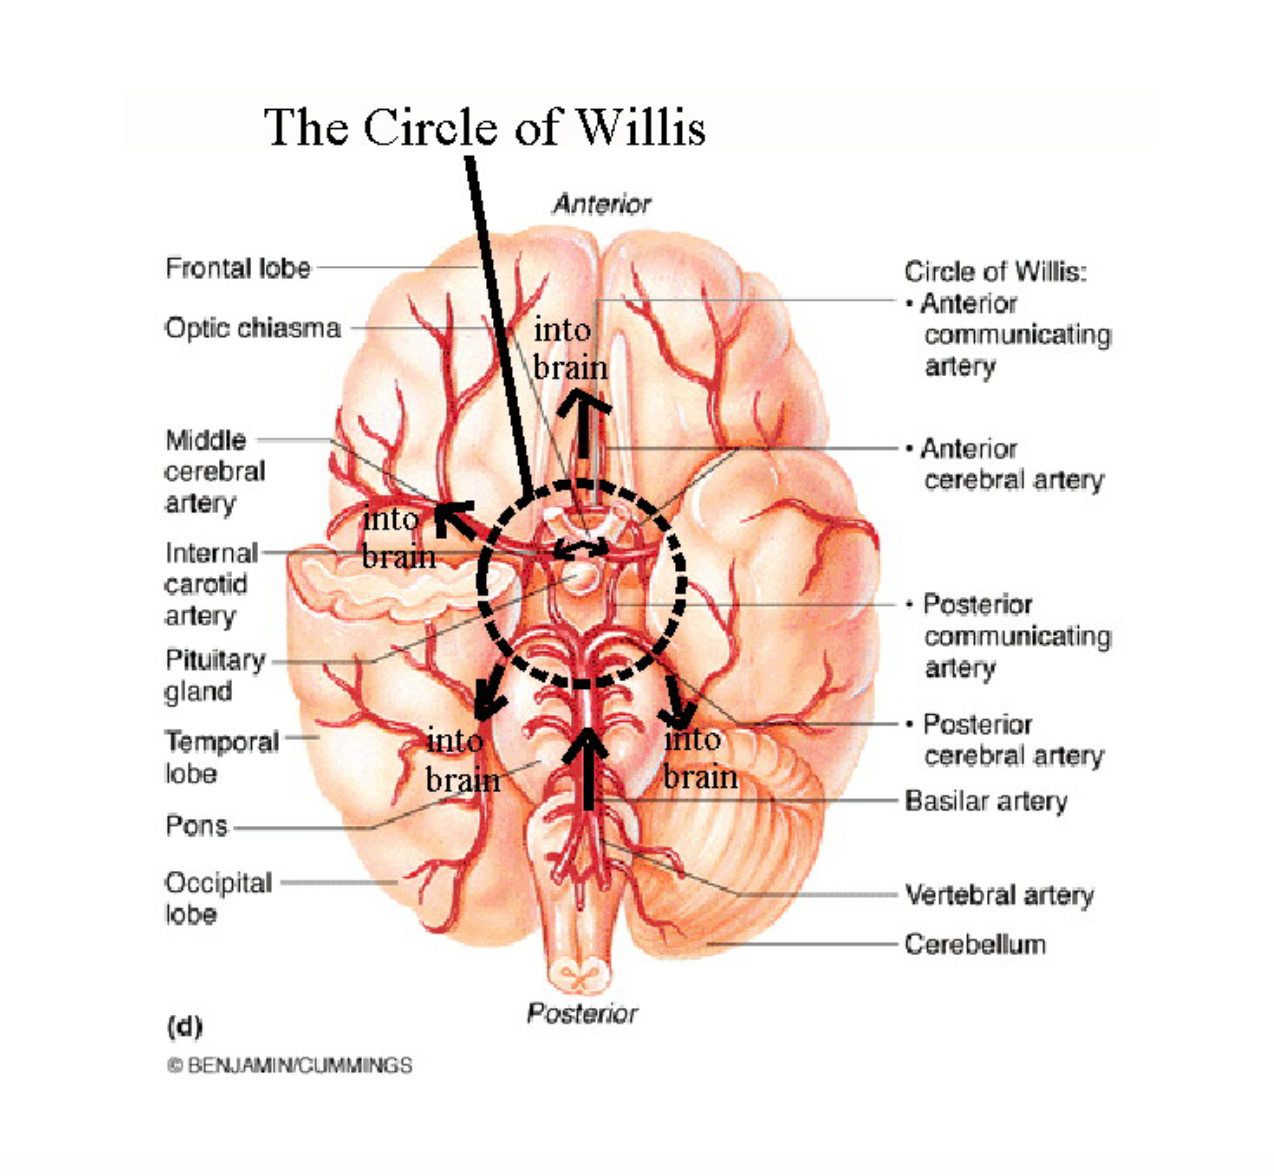 Pin by Hannah Abbott on Circle of Willis | Pinterest | Medical